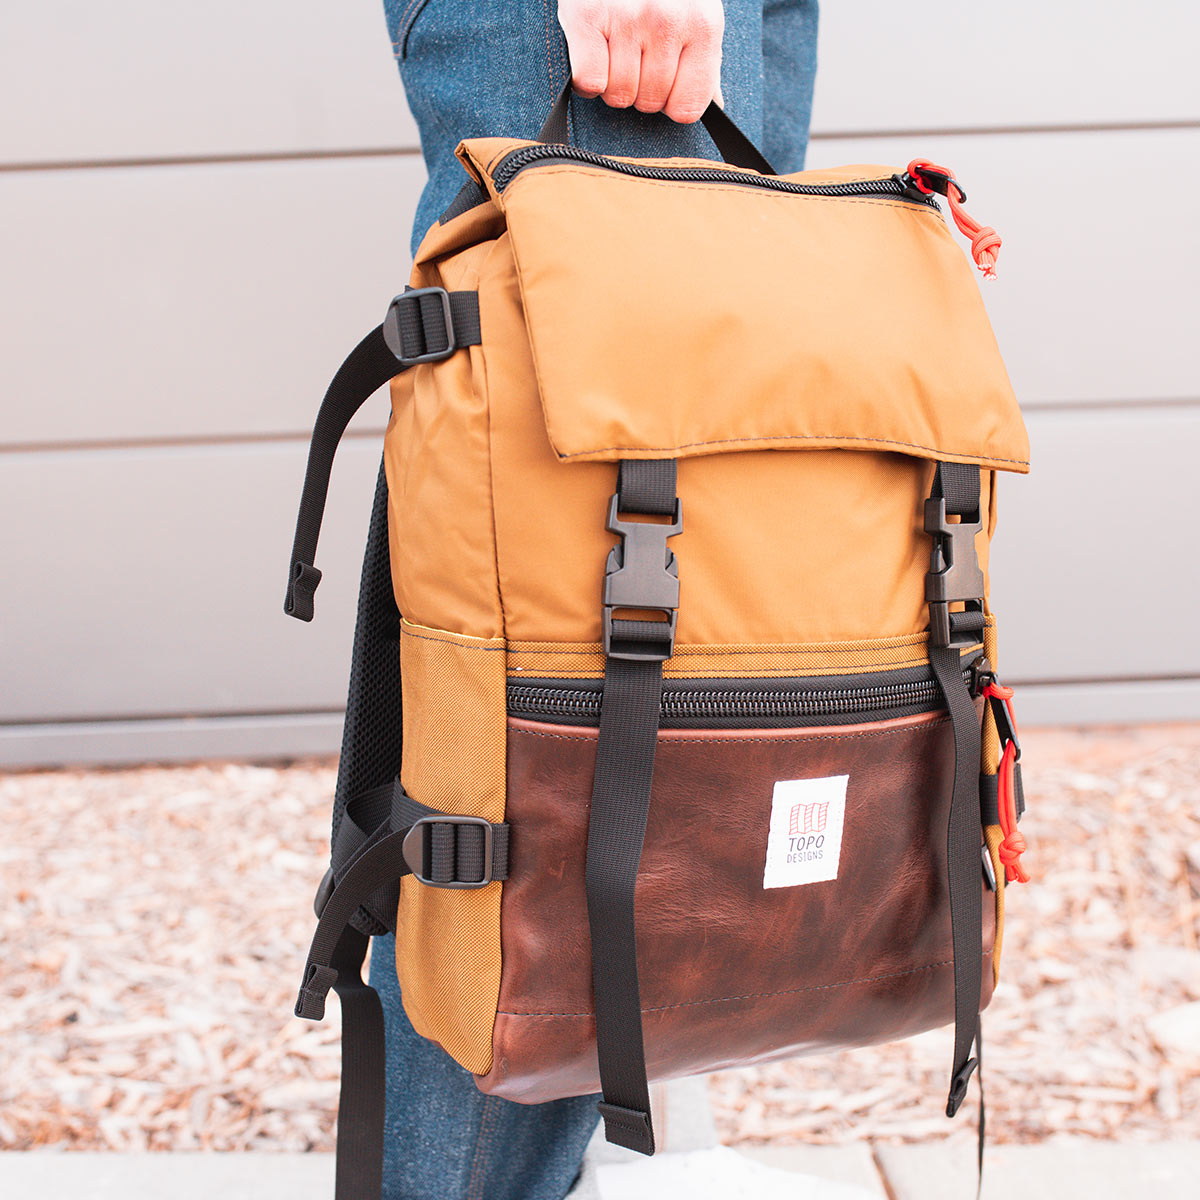 Topo Designs Rover Pack Heritage Duck Brown/Dark Brown Leather, timeless backpack with great functionalities